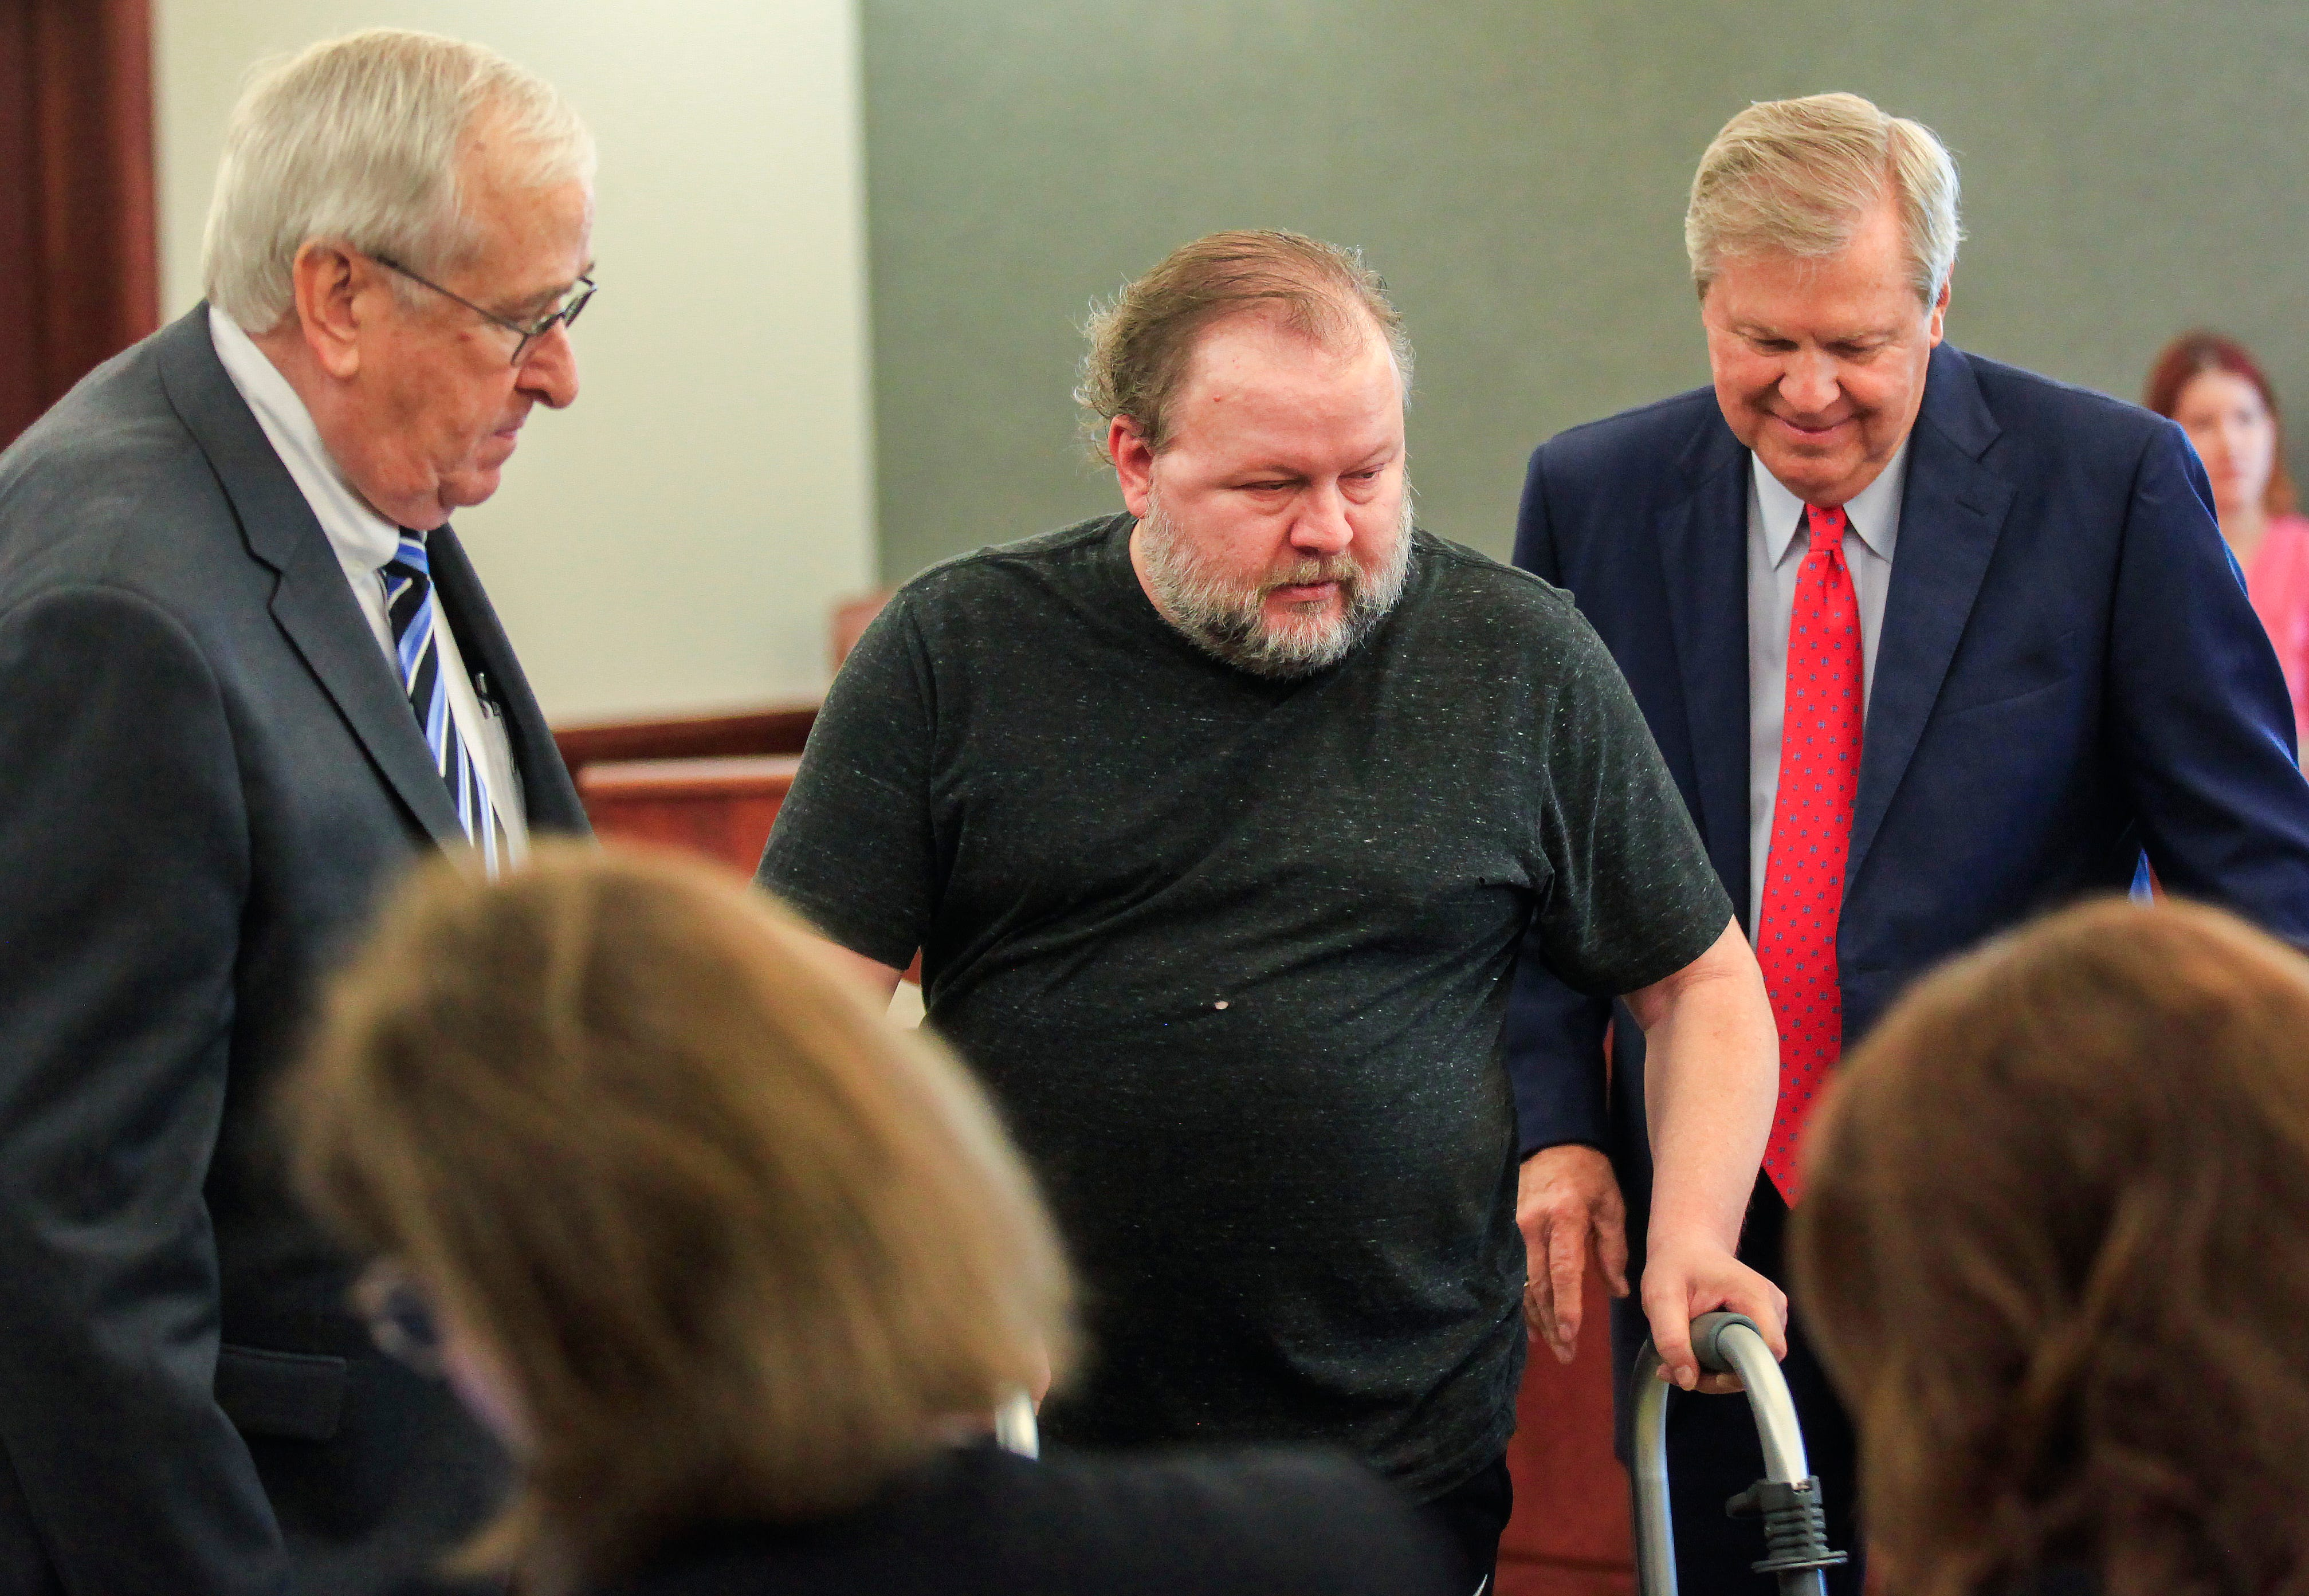 Benjamin Lambert, center, was arraigned and pleaded not guilty to charges of child sex trafficking at the Christian County courthouse on Wednesday, Oct. 3, 2018. Also pictured are Lambert's lawyers, Dee Wampler, right, and Marvin Gilmore, left.